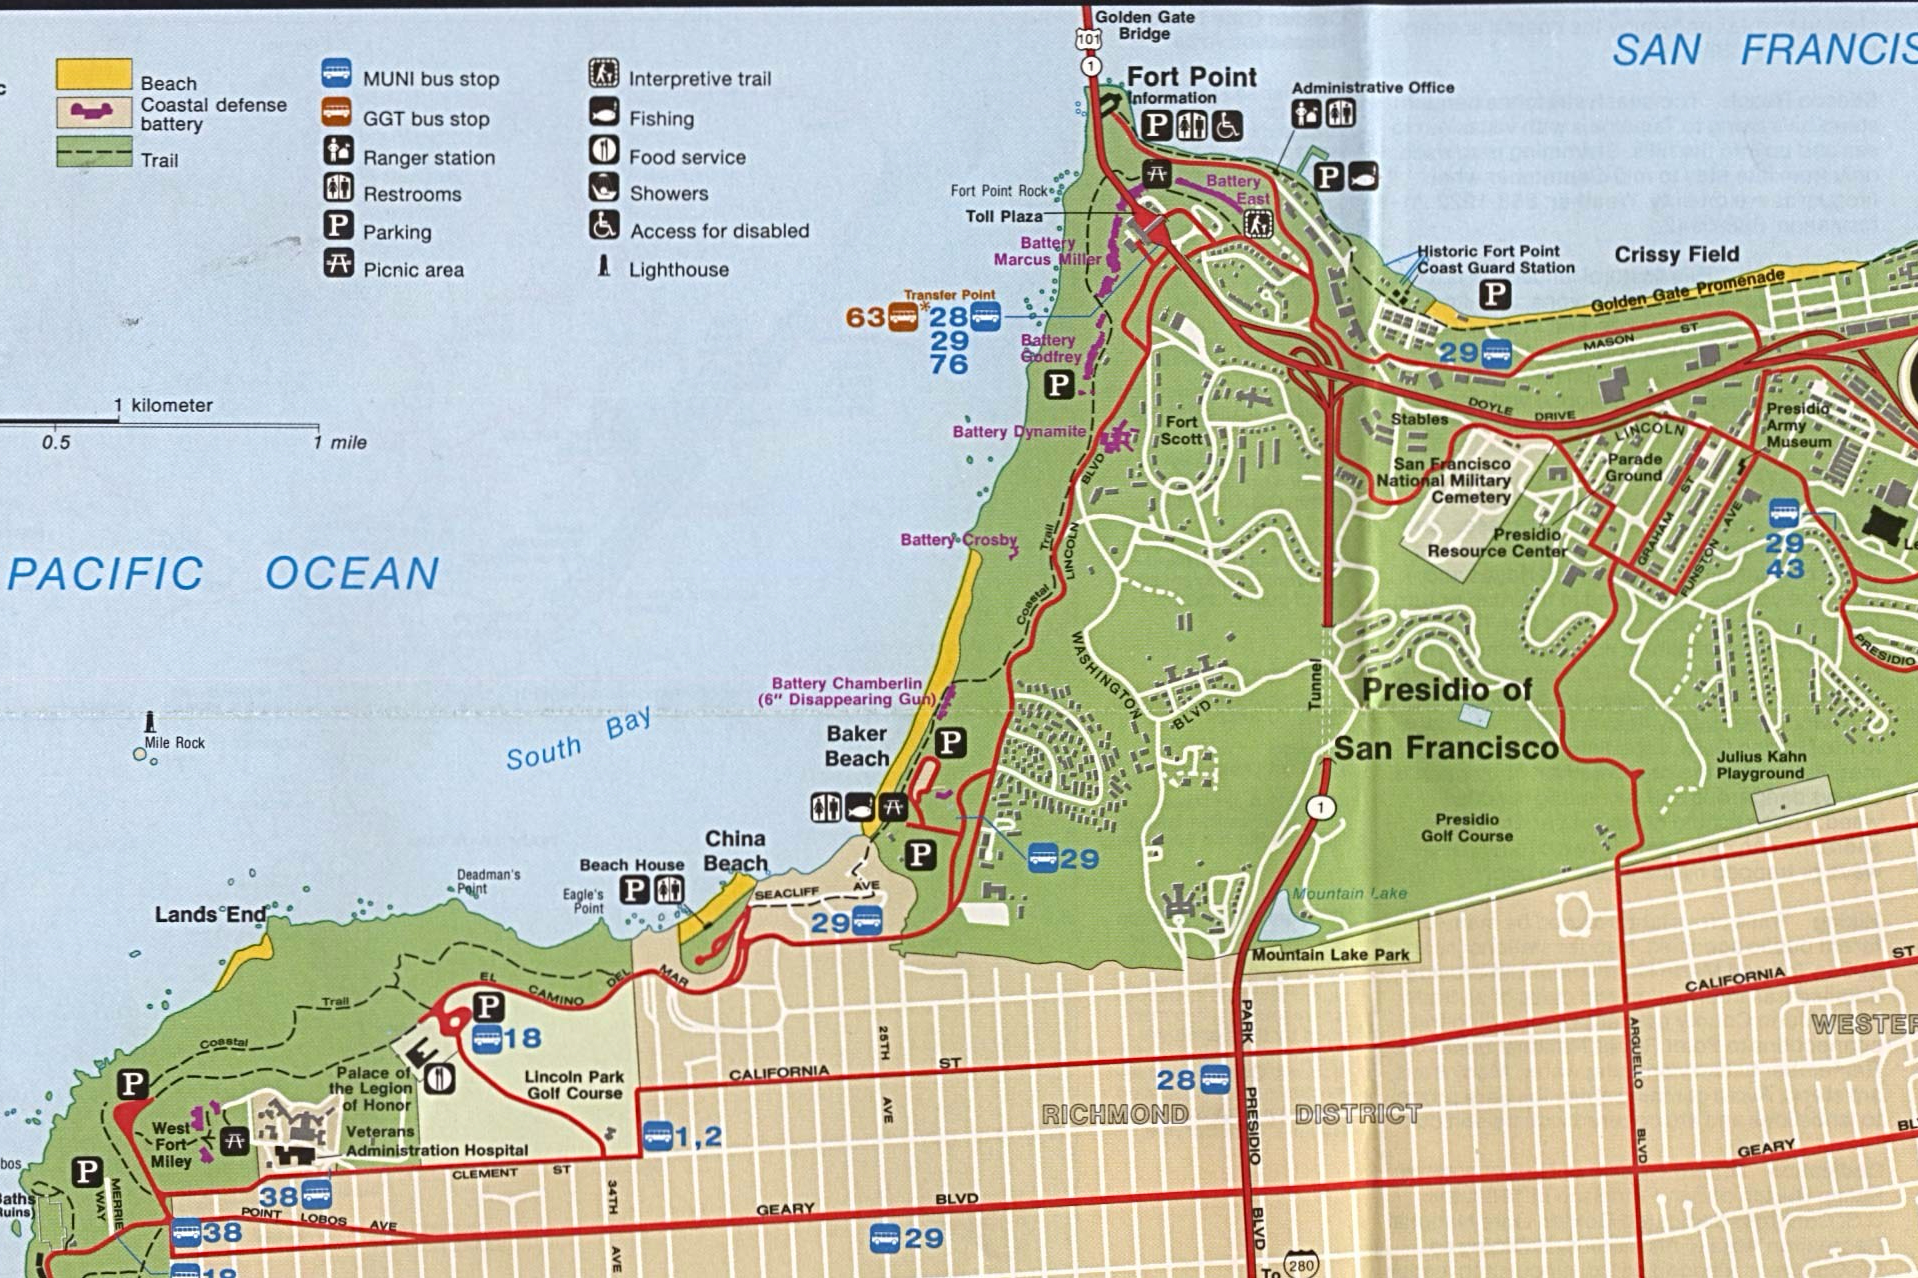 park-map-of-golden-gate-national-recreation-area-north-california-united-states.jpg